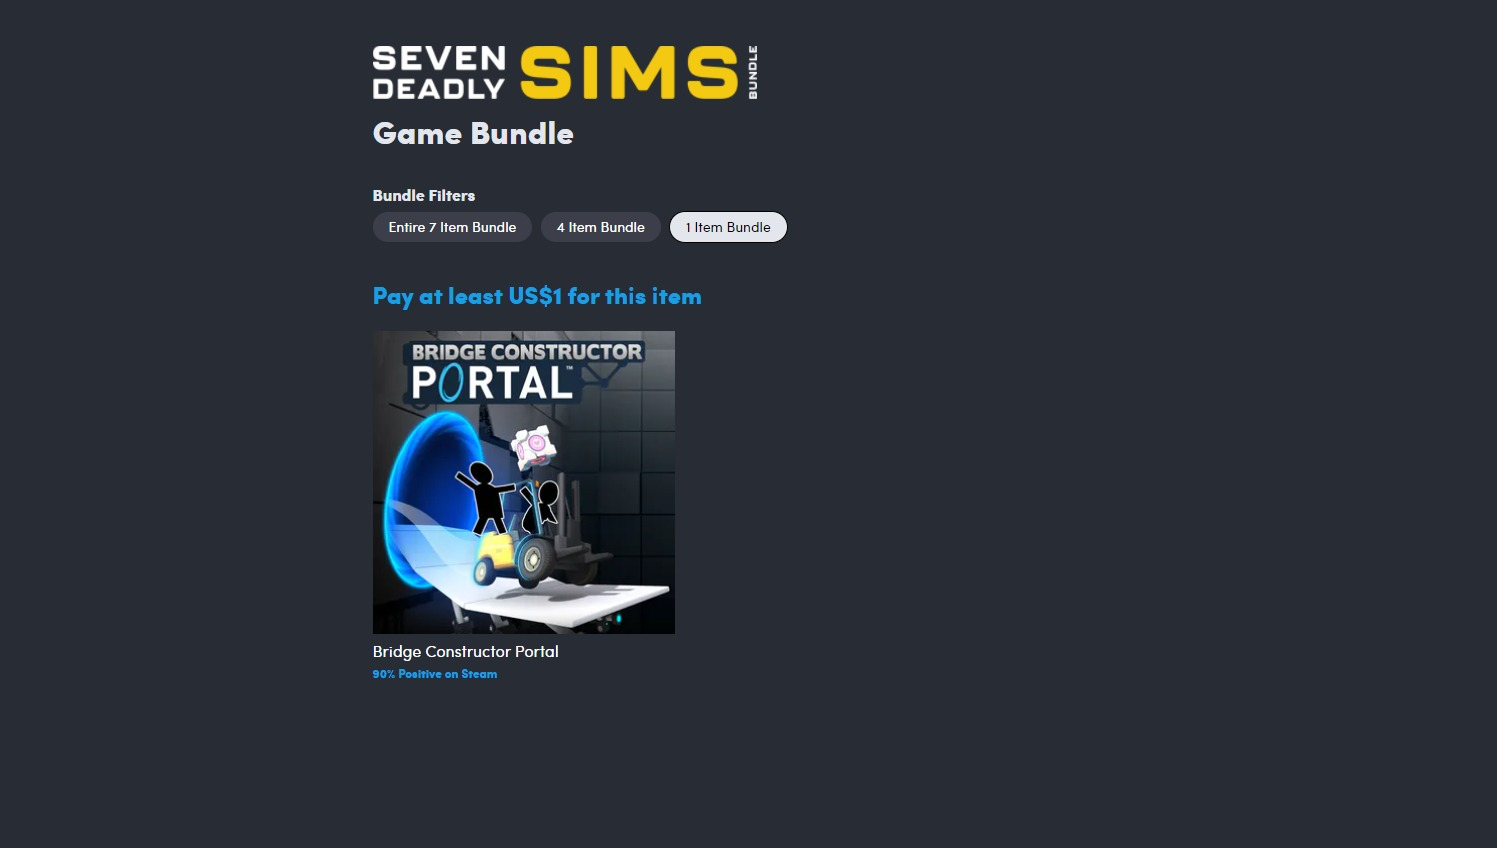 FireShot Capture 034 - Humble Seven Deadly Sims Bundle (pay what you want and help charity)_ - www.humblebundle.com.jpg